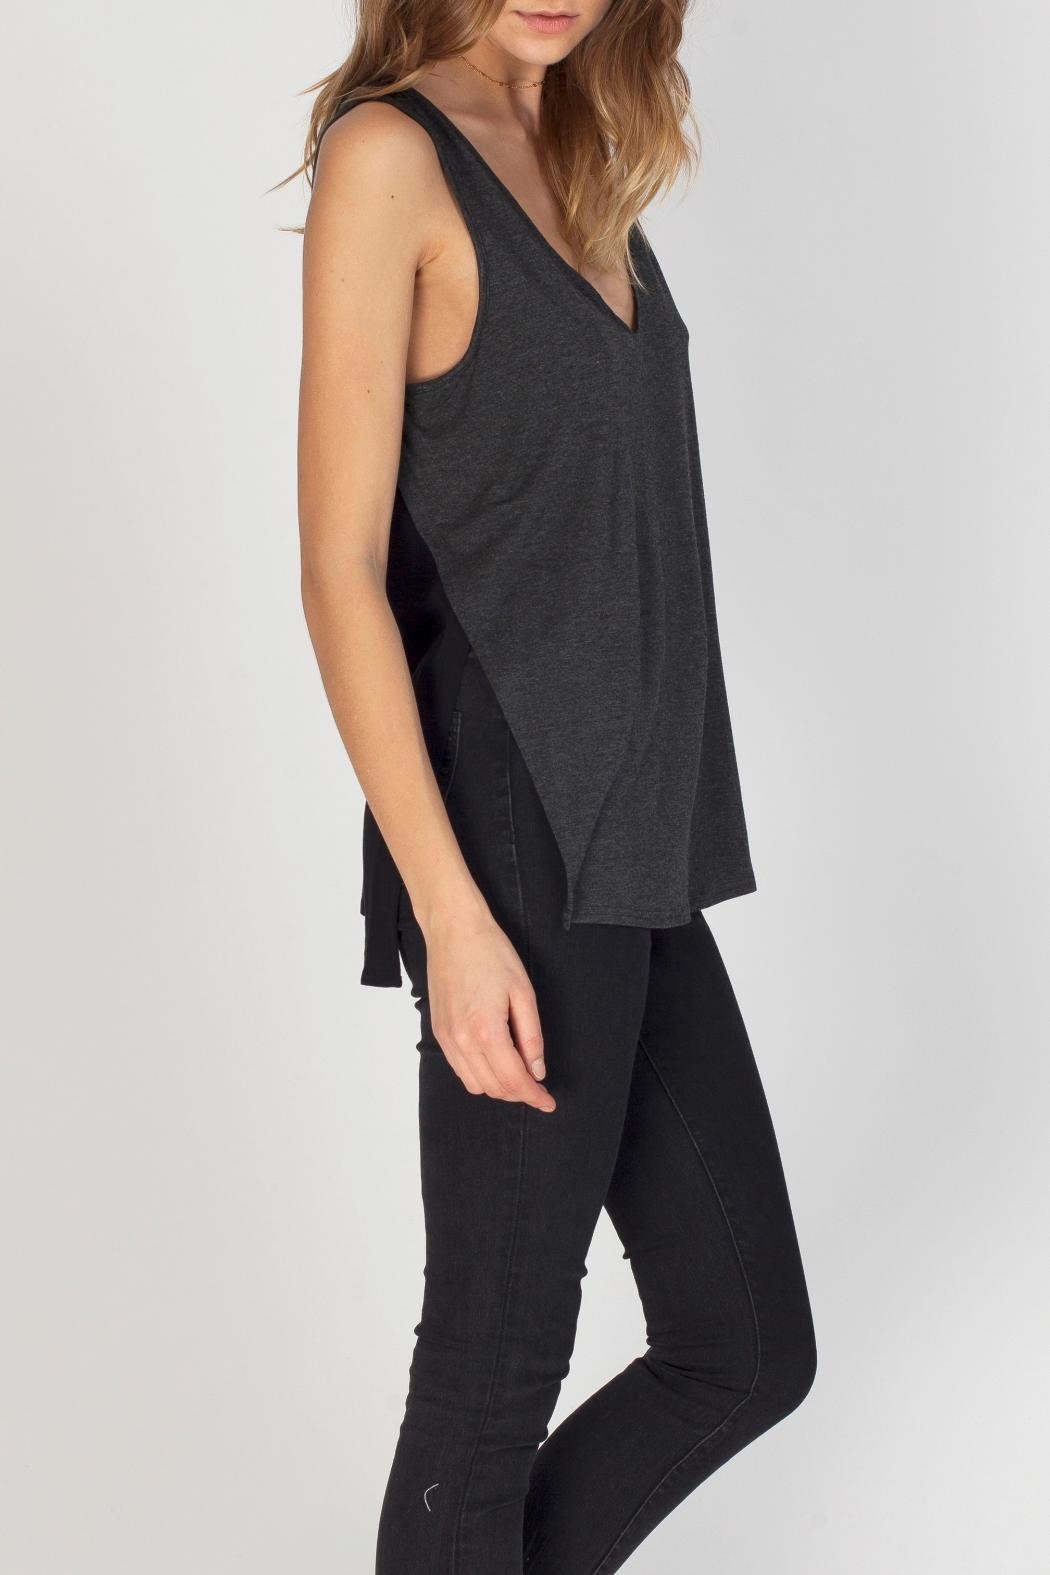 Gentle Fawn Ripley Tank Top - Front Full Image